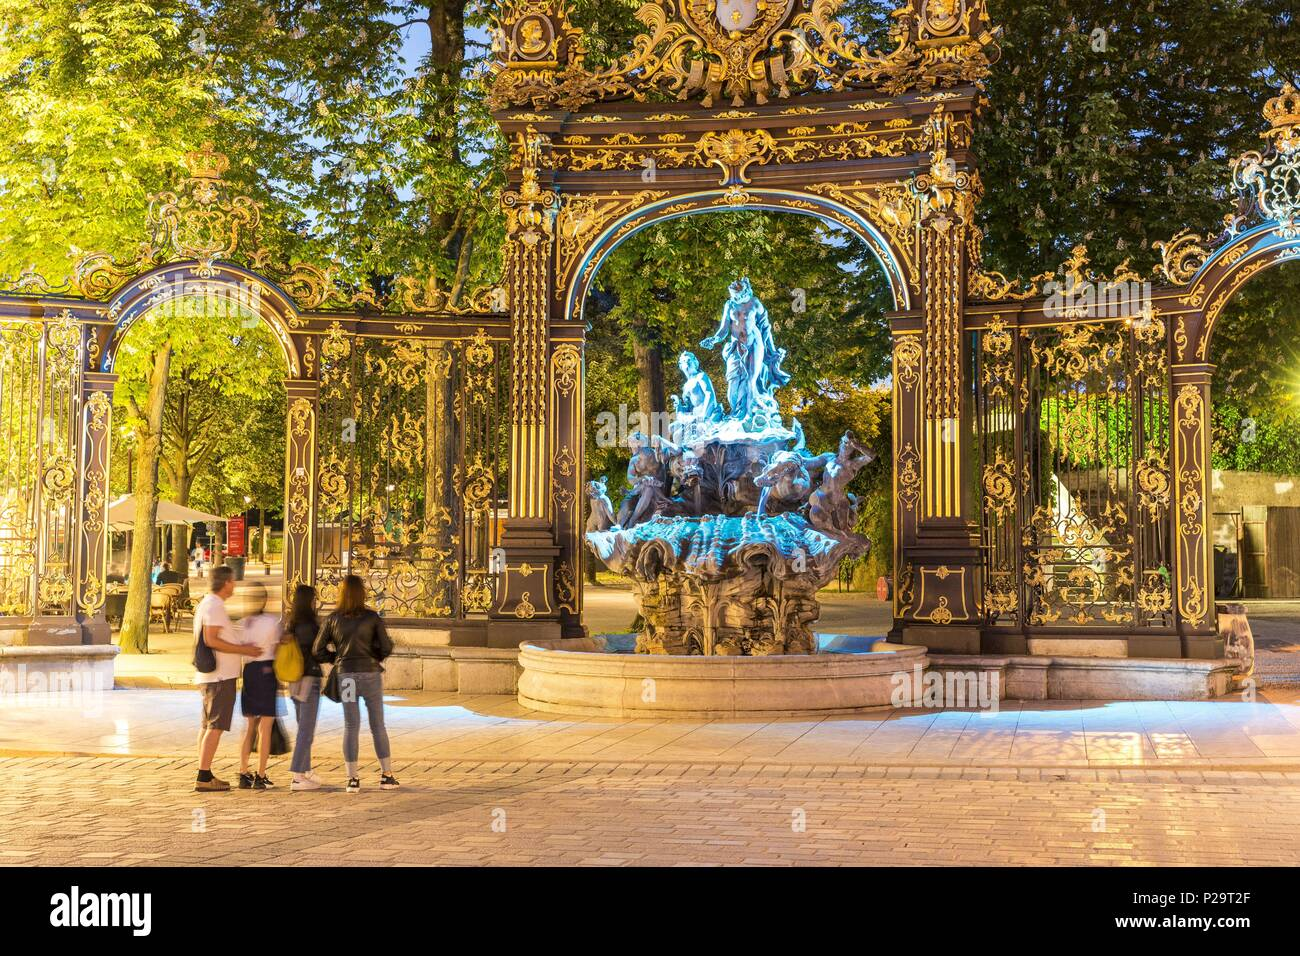 France, Meurthe et Moselle, Nancy, Place Stanislas or former Royal Place listed as World Heritage by UNESCO built by Stanislas Leszczynski king of Poland and last Duke of Lorraine in the 18th century, the fountain of Amphitrite - Stock Image